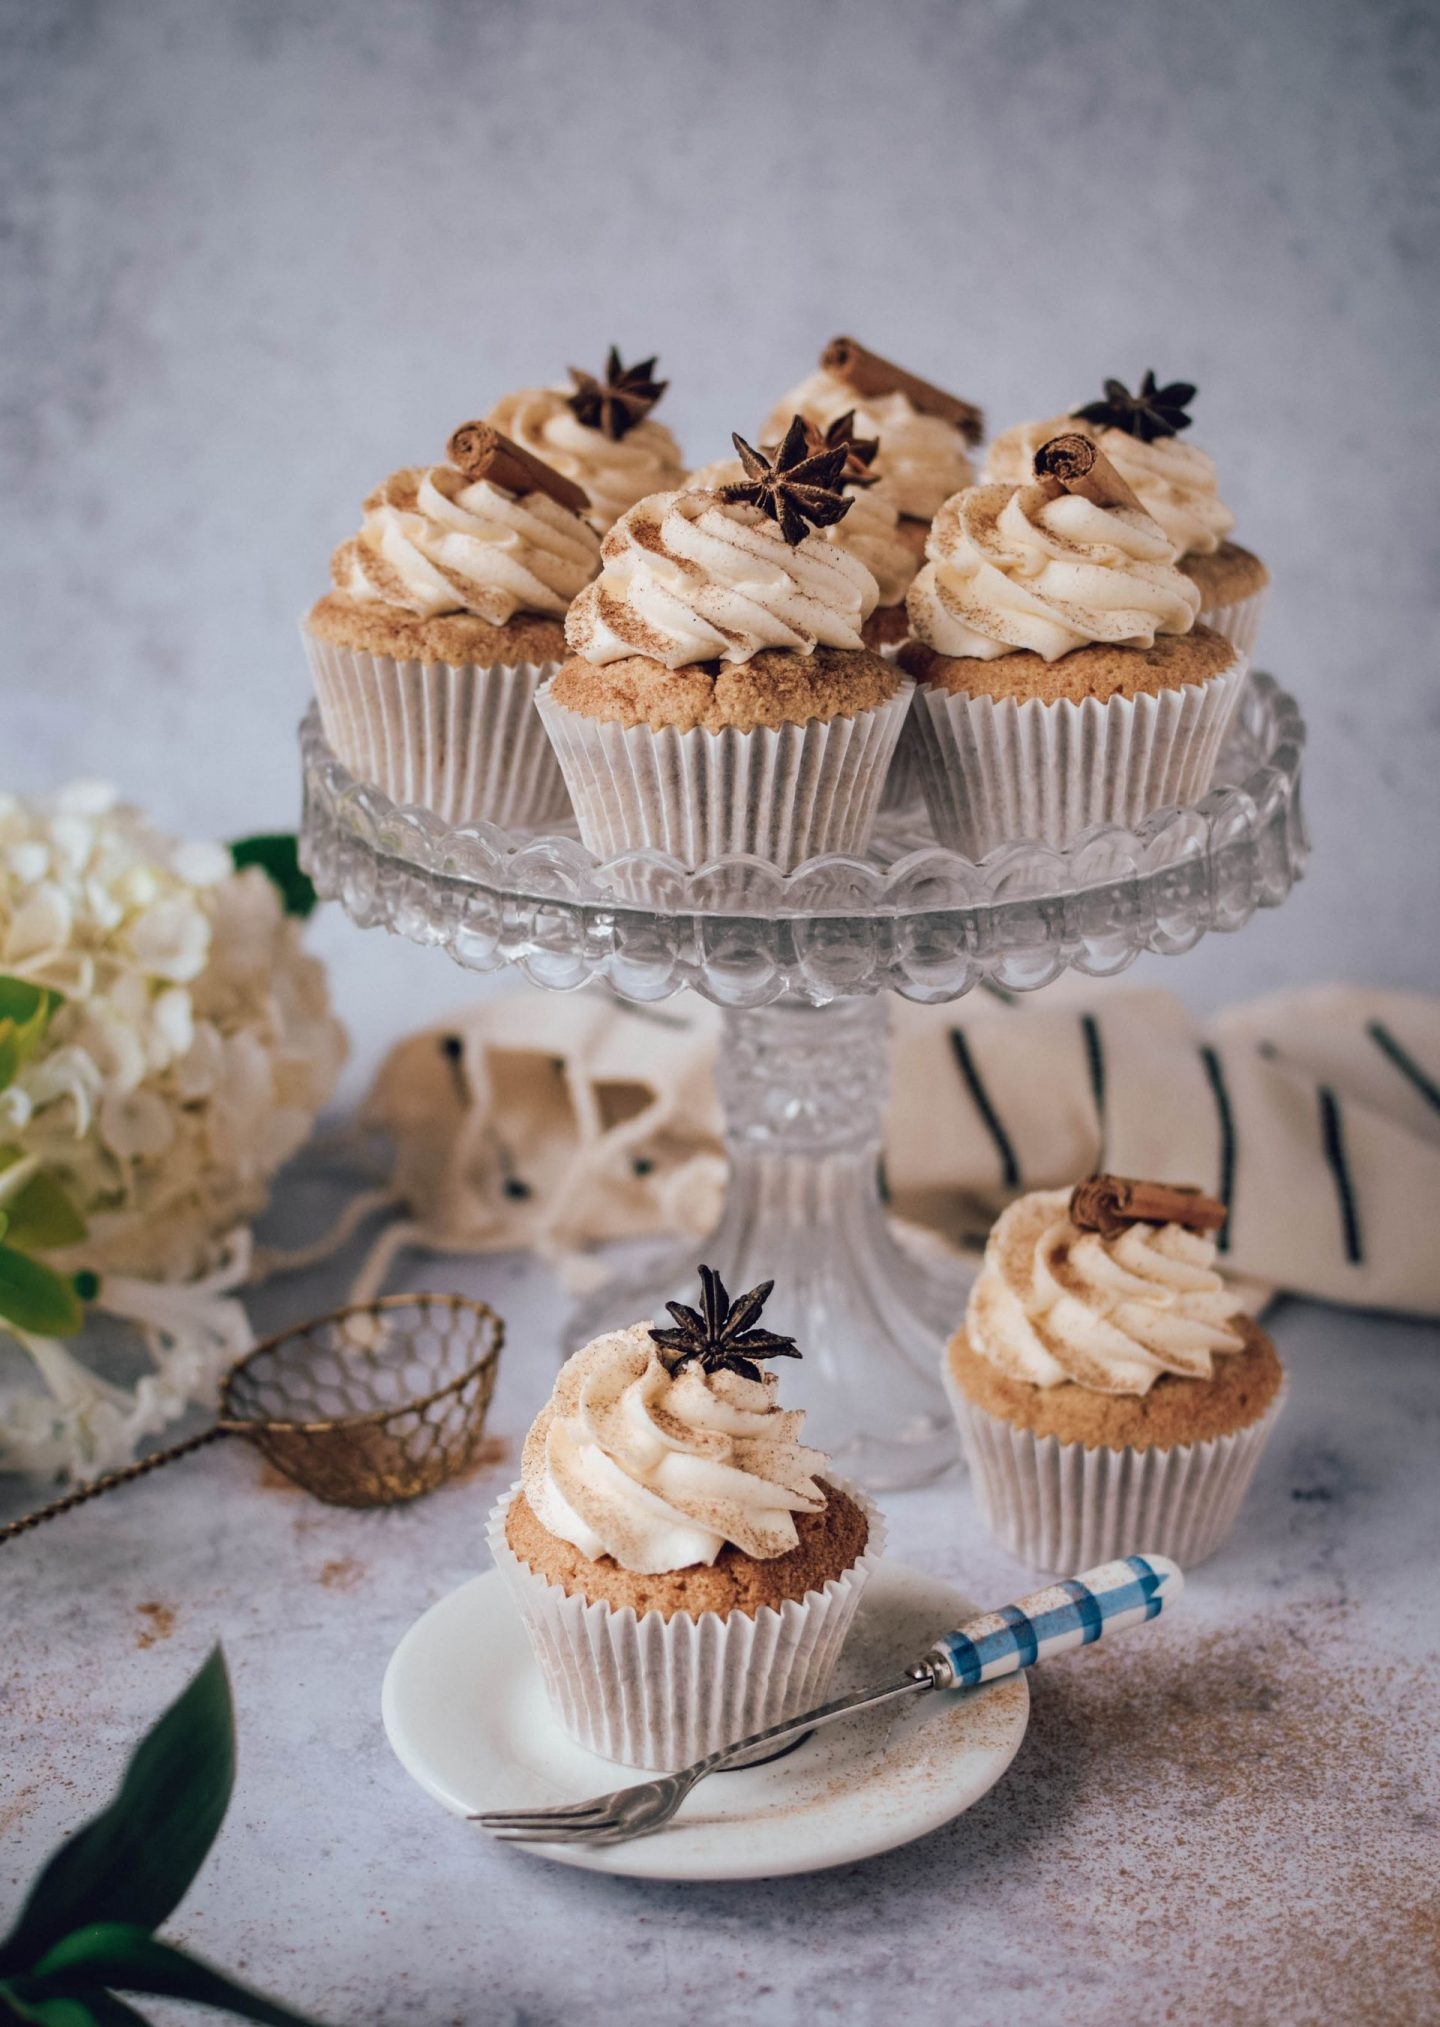 Chai Spiced Cupcakes on a cake stand